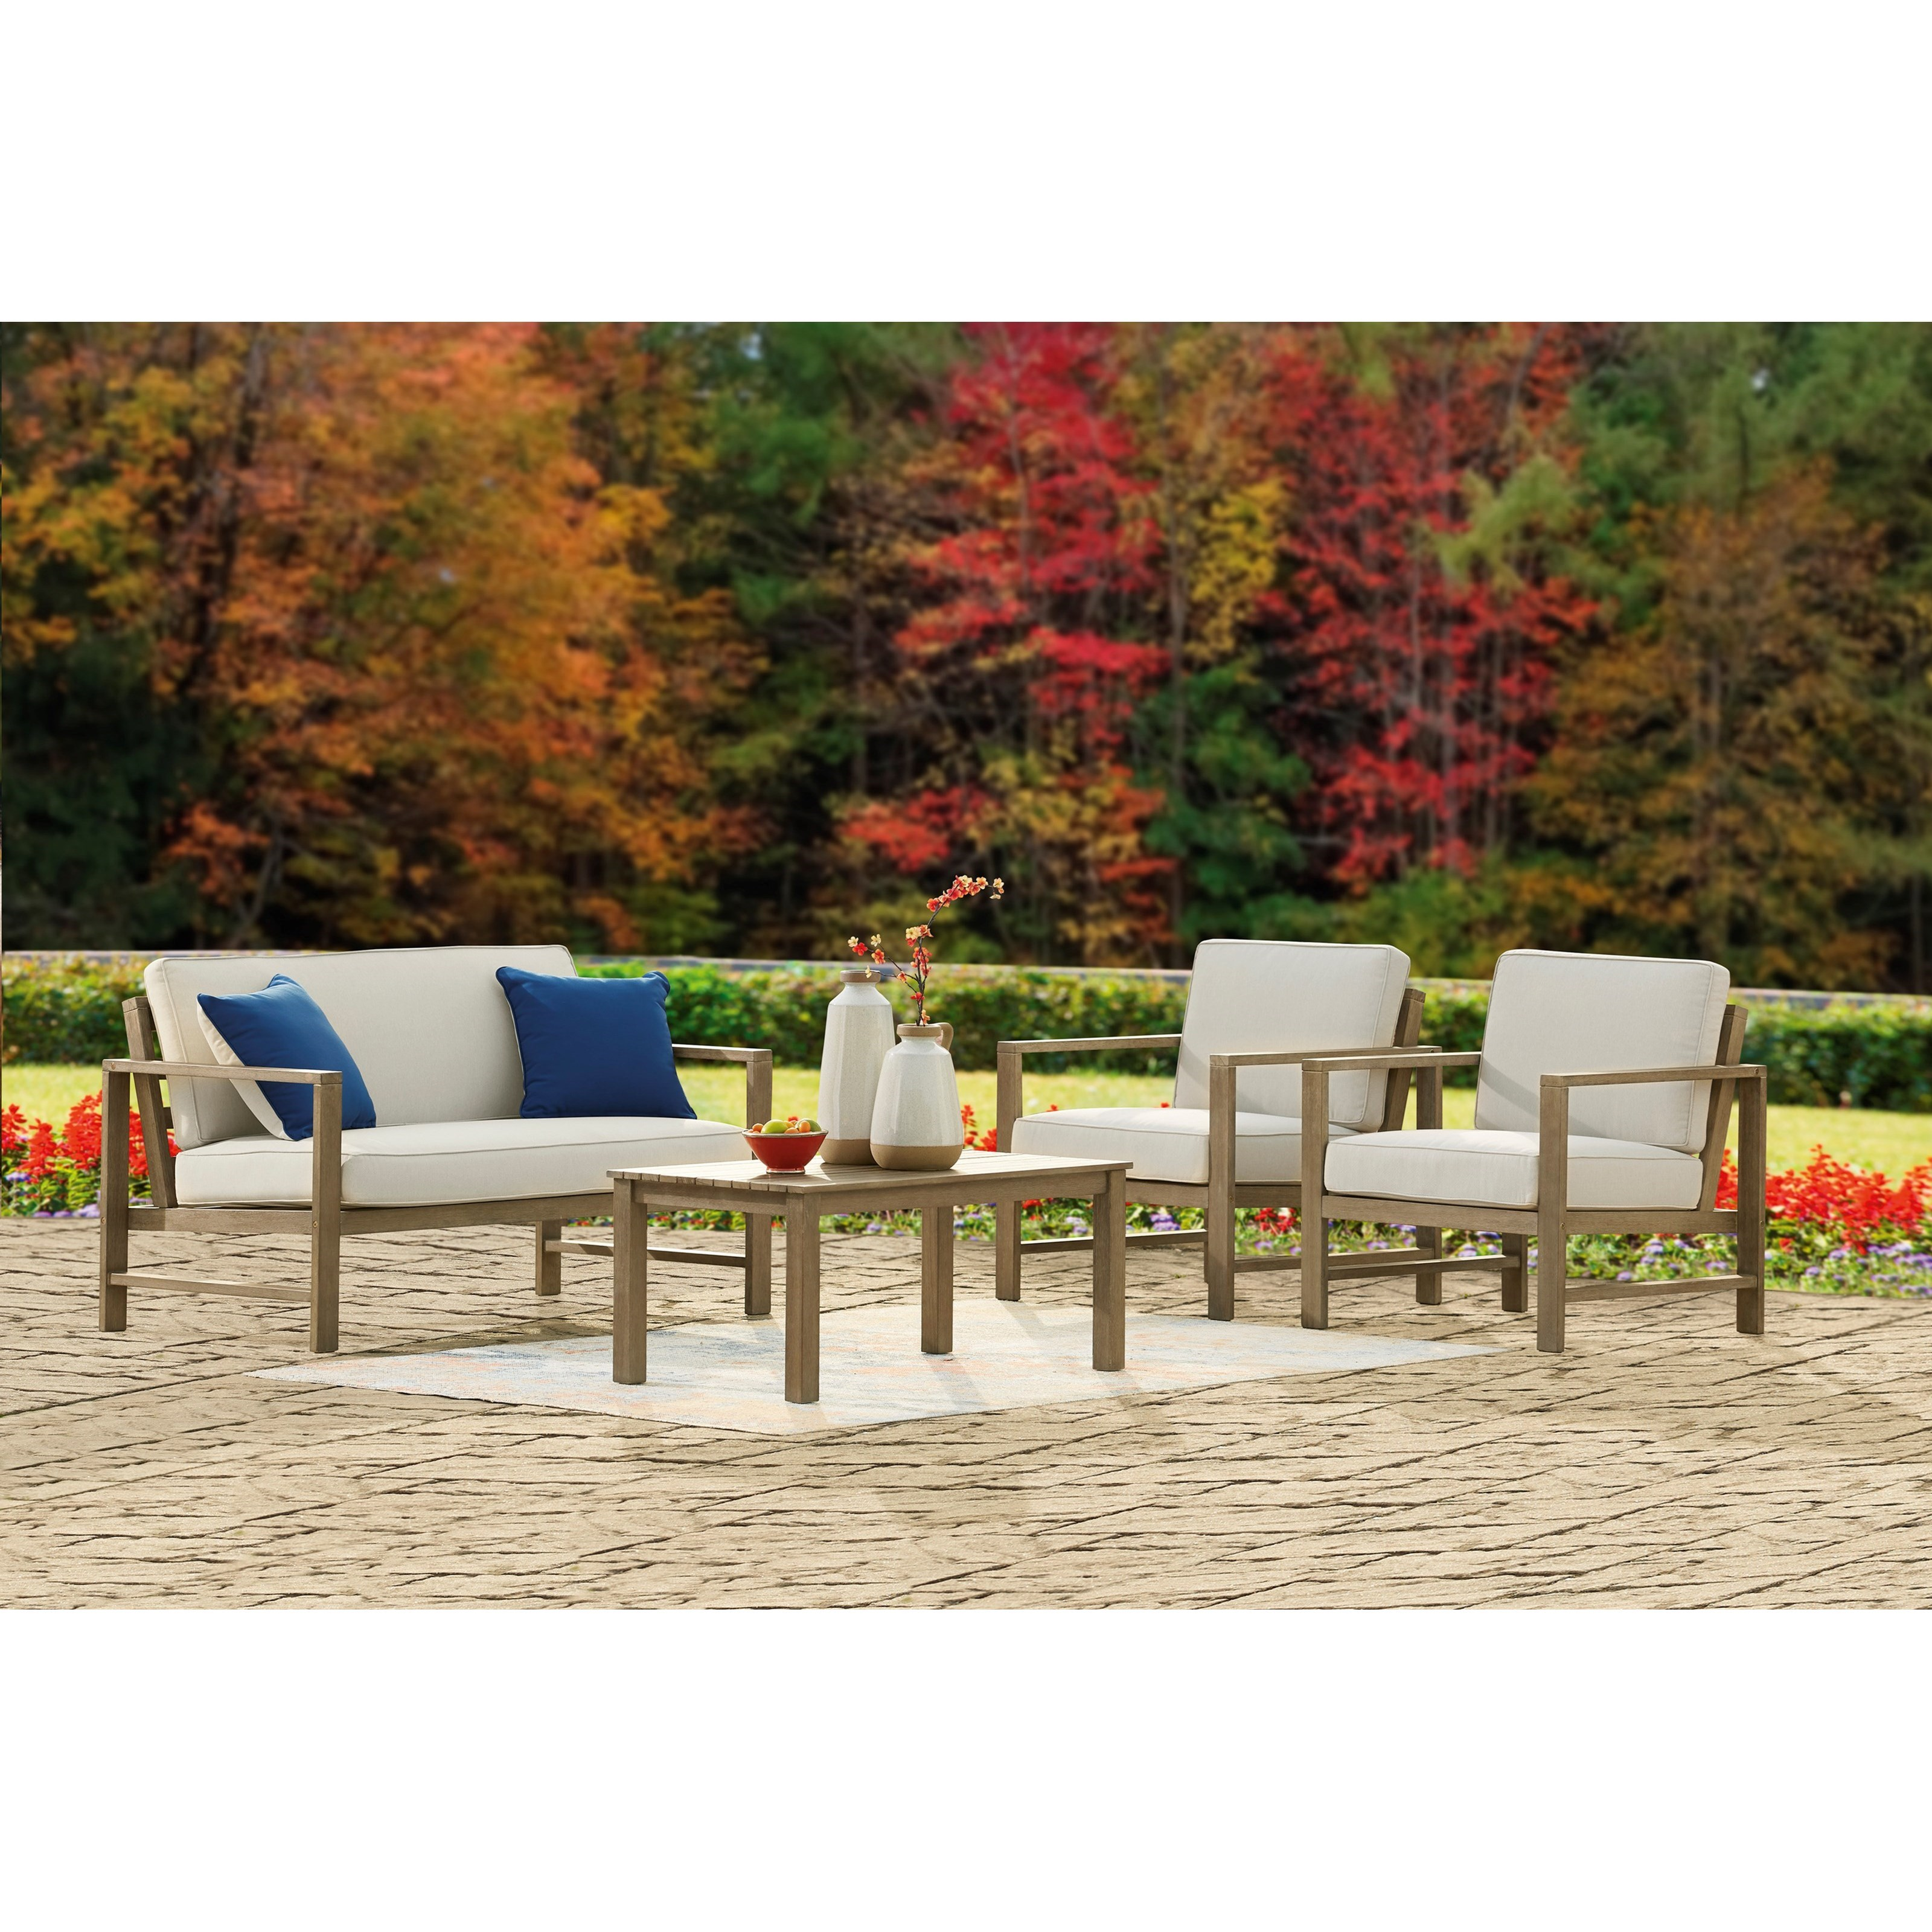 Fynnegan Loveseat w/ Table & 2 Lounge Chairs by Signature Design by Ashley at Value City Furniture